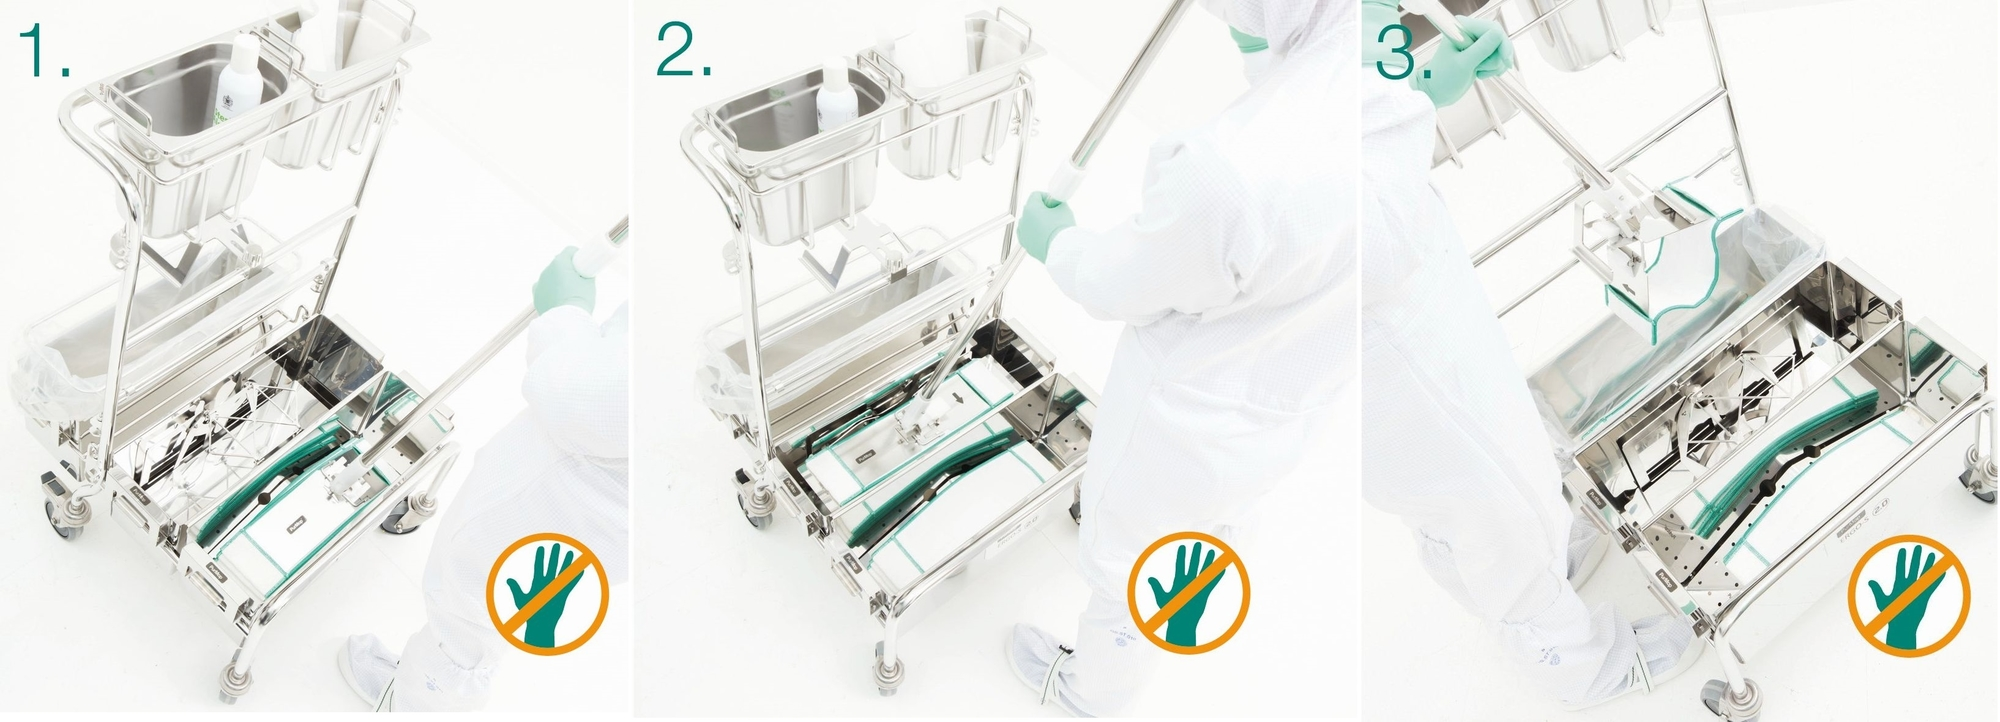 image representing touchless sterile cleanroom mopping system